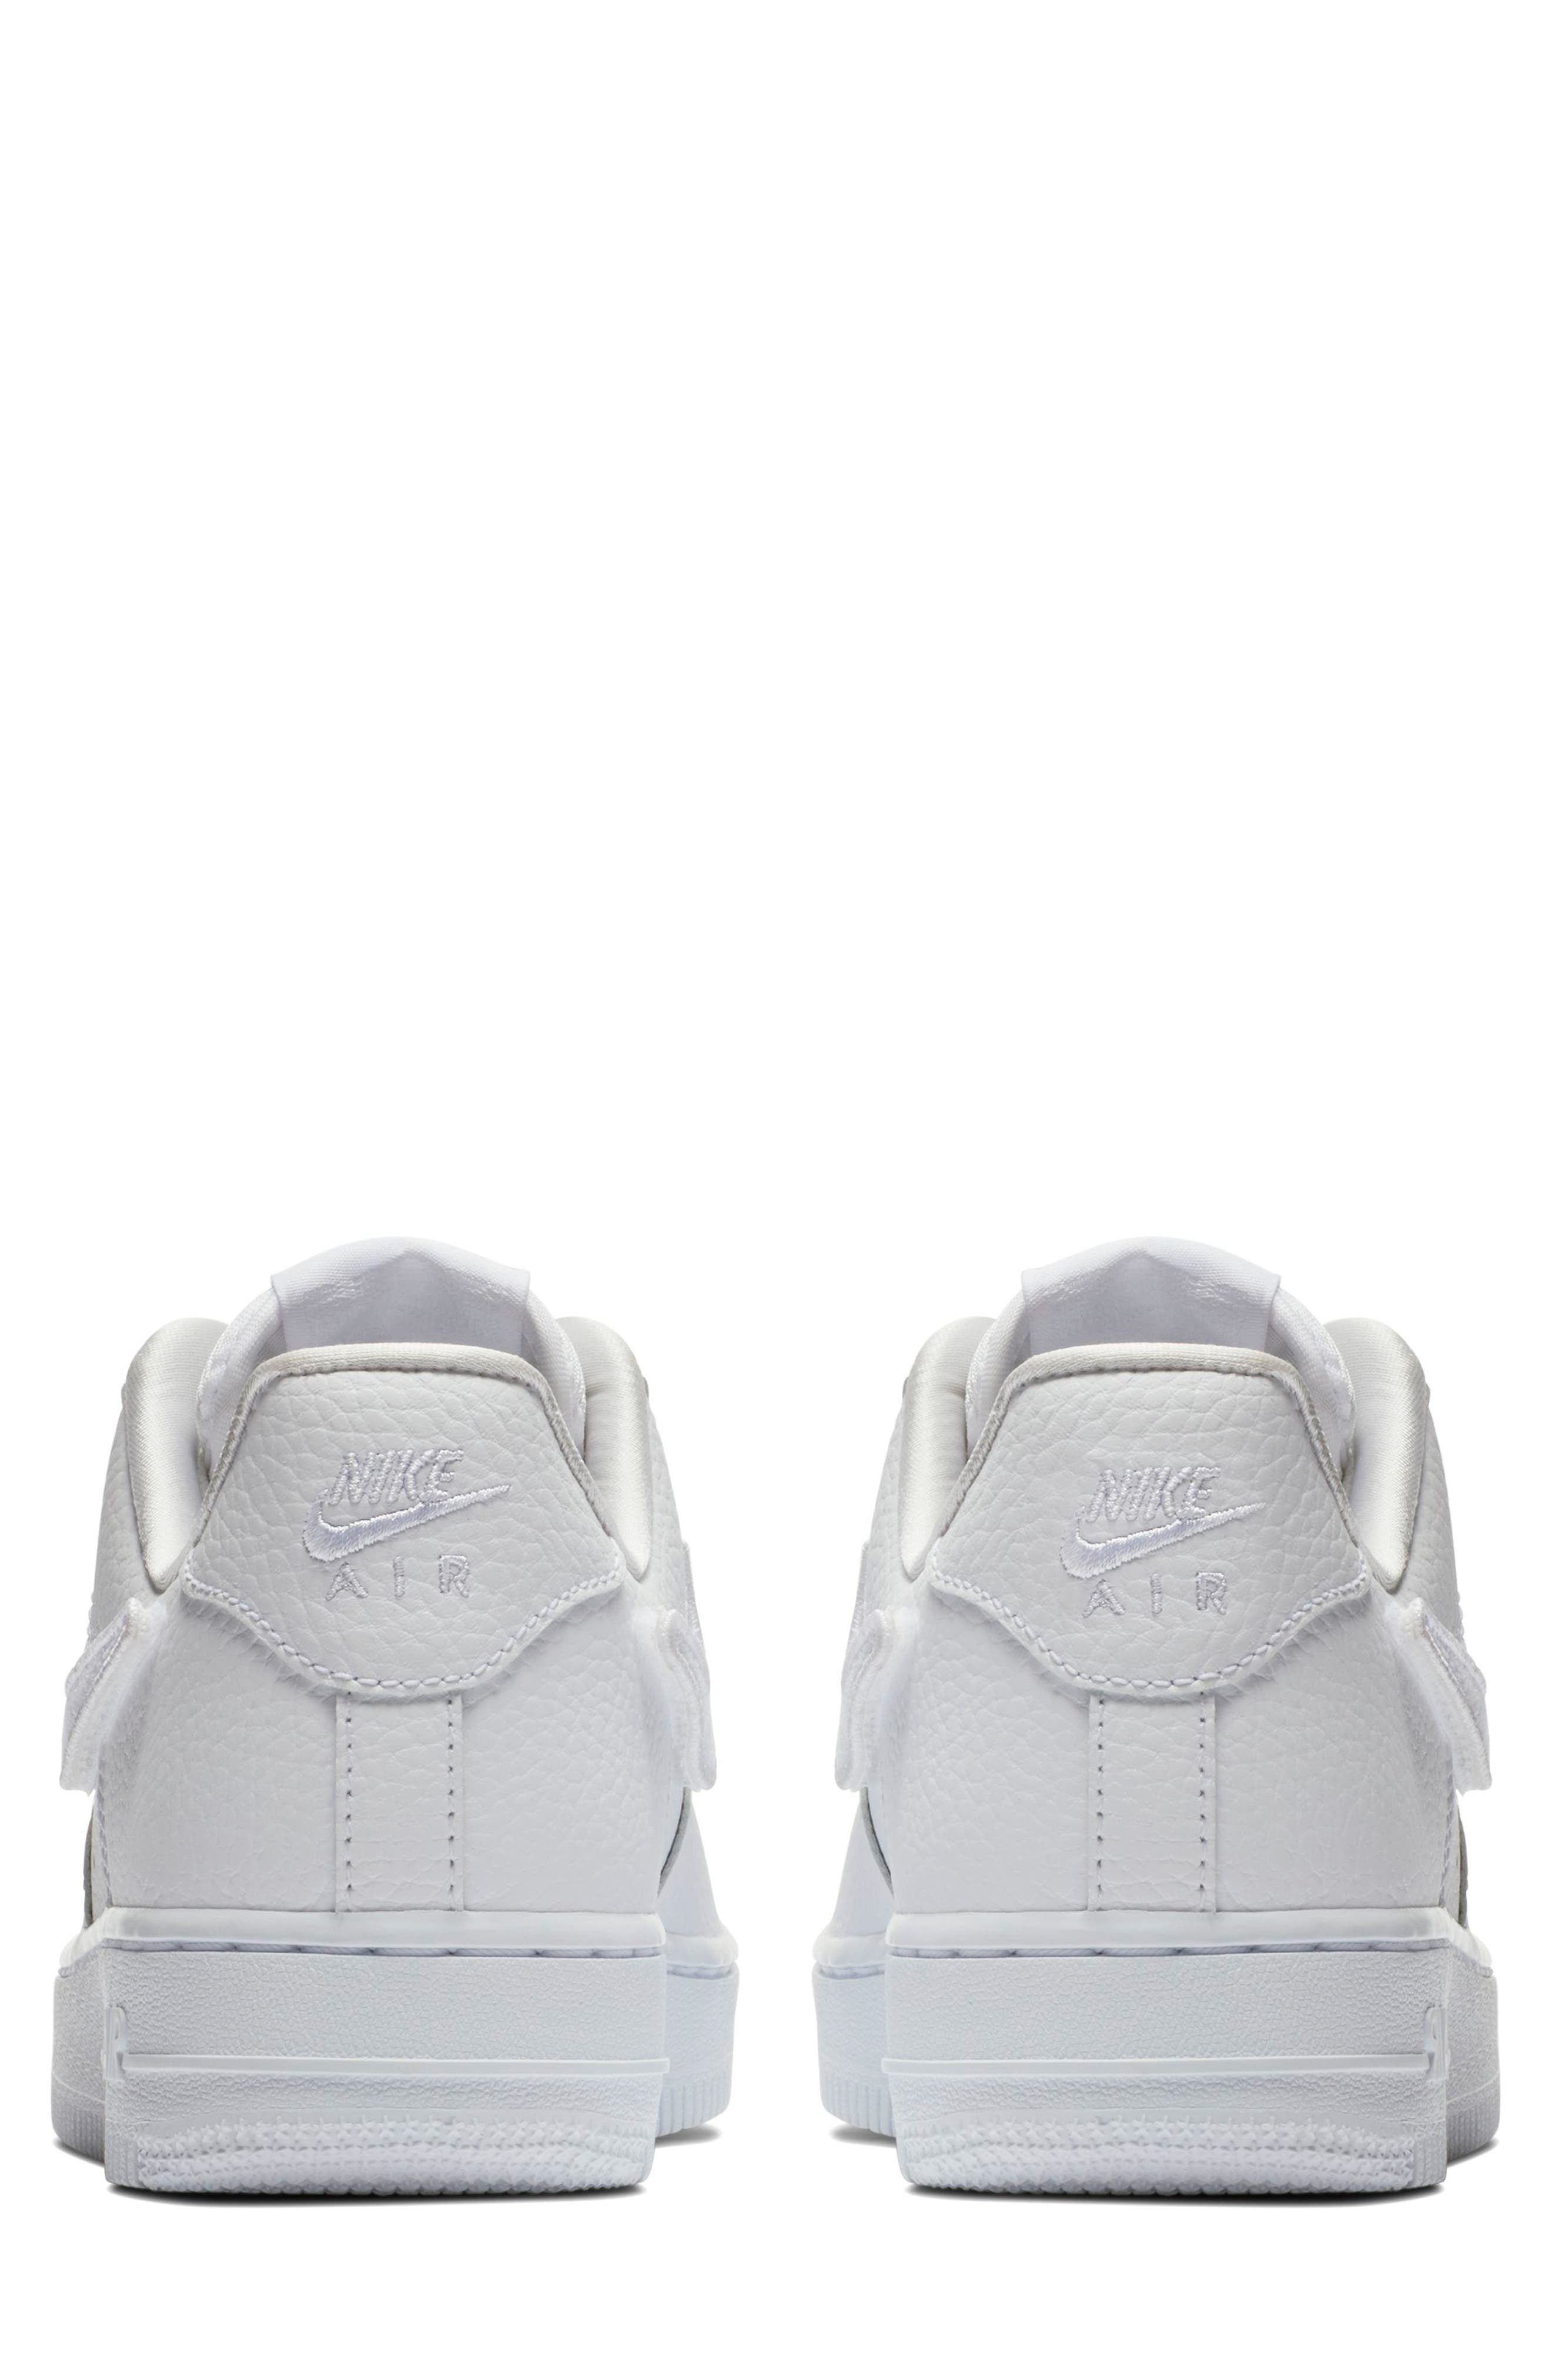 Nike Nike Air Force 1 100 Detachable Logo Sneaker (Women) from Nordstrom | ShapeShop